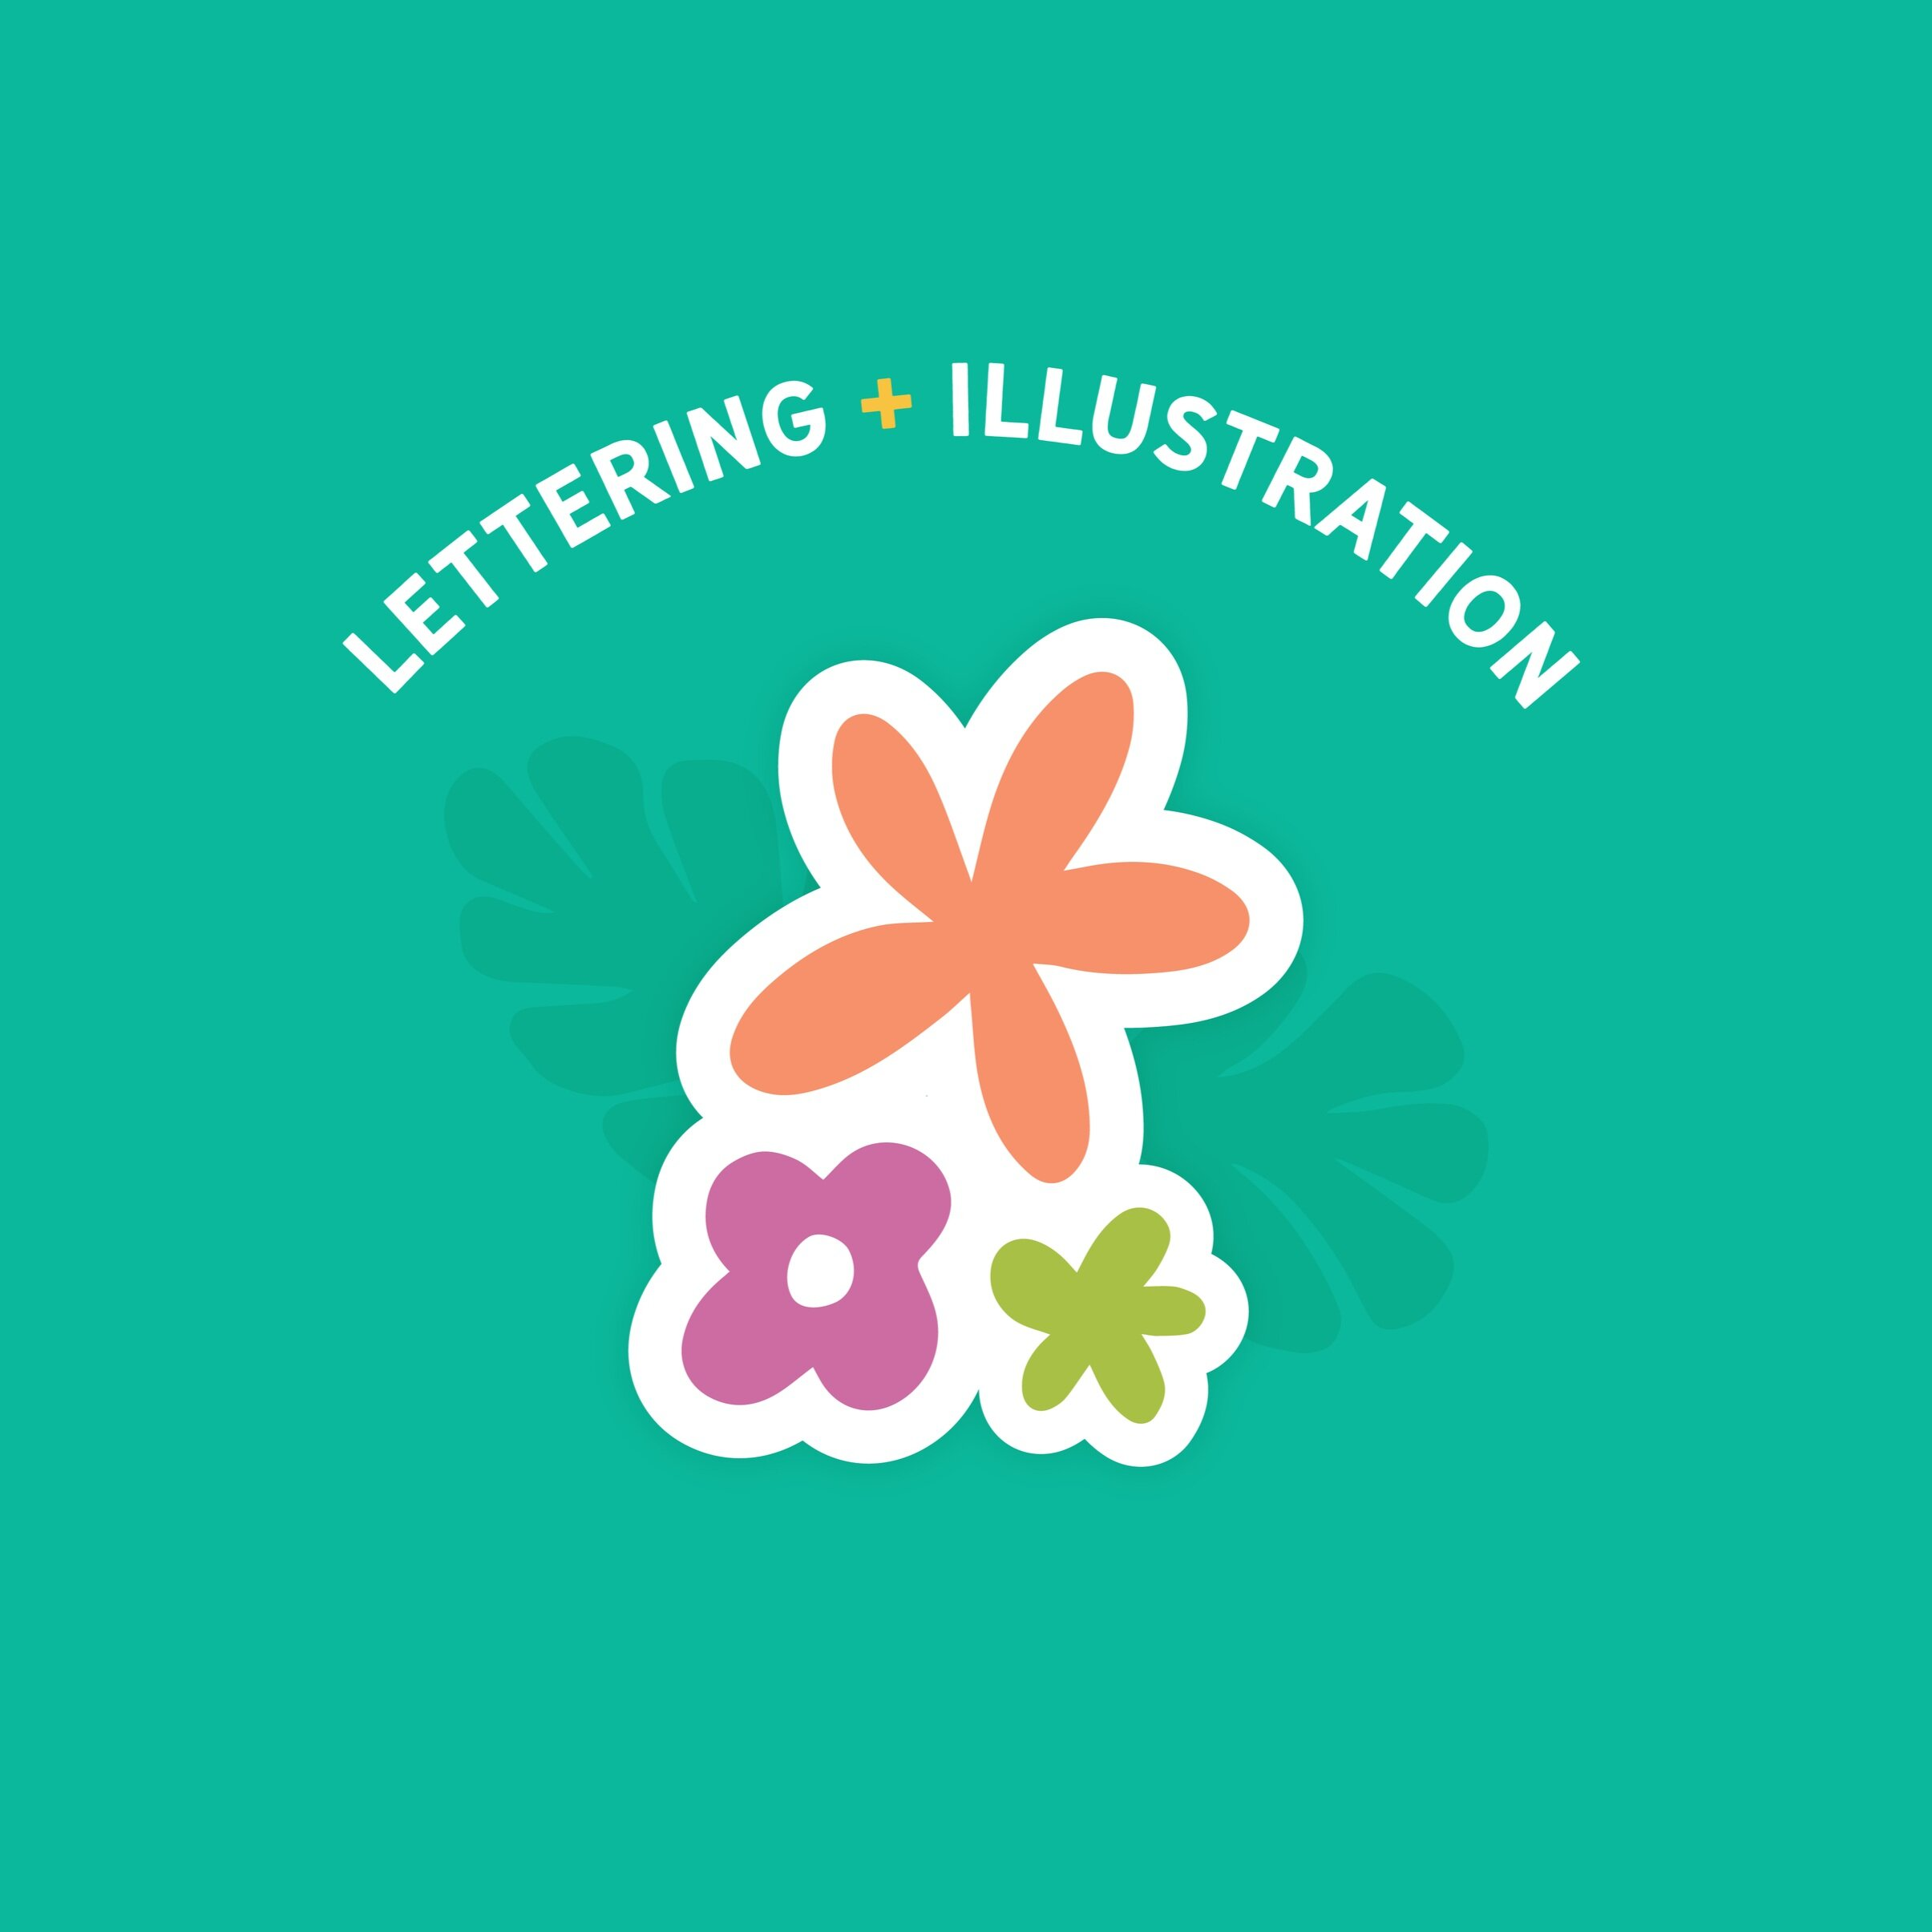 lettering-illustration-portfolio-cover-01.jpg